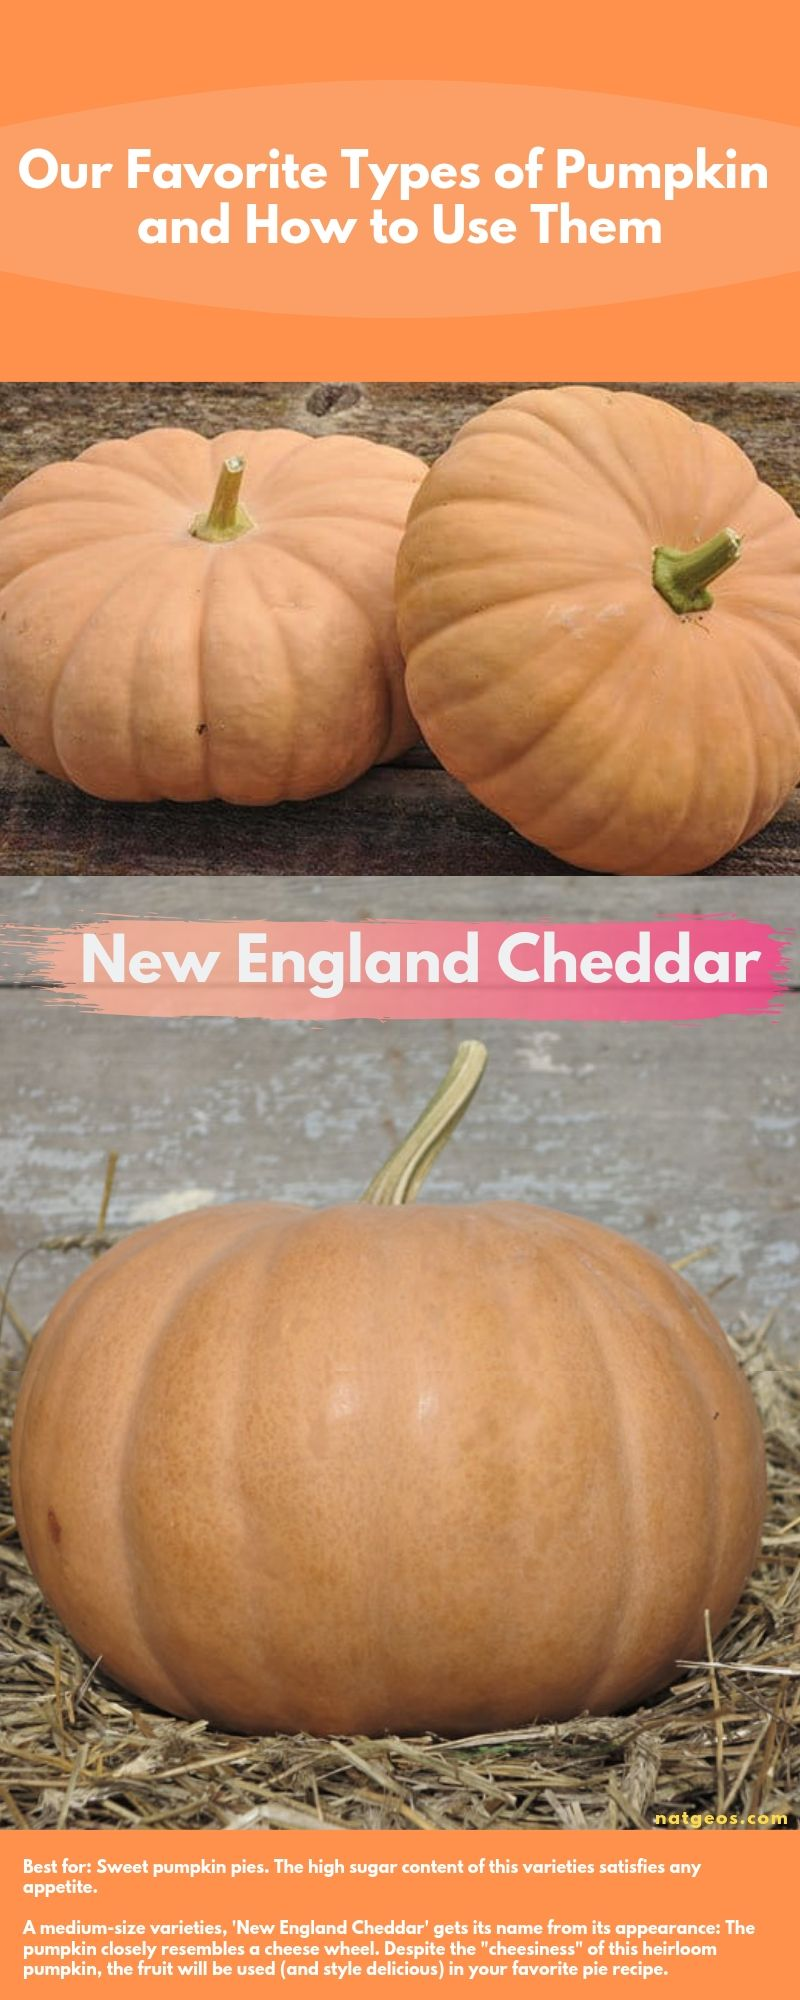 Our Favorite Types of Pumpkin and How to Use Them; New England Cheddar